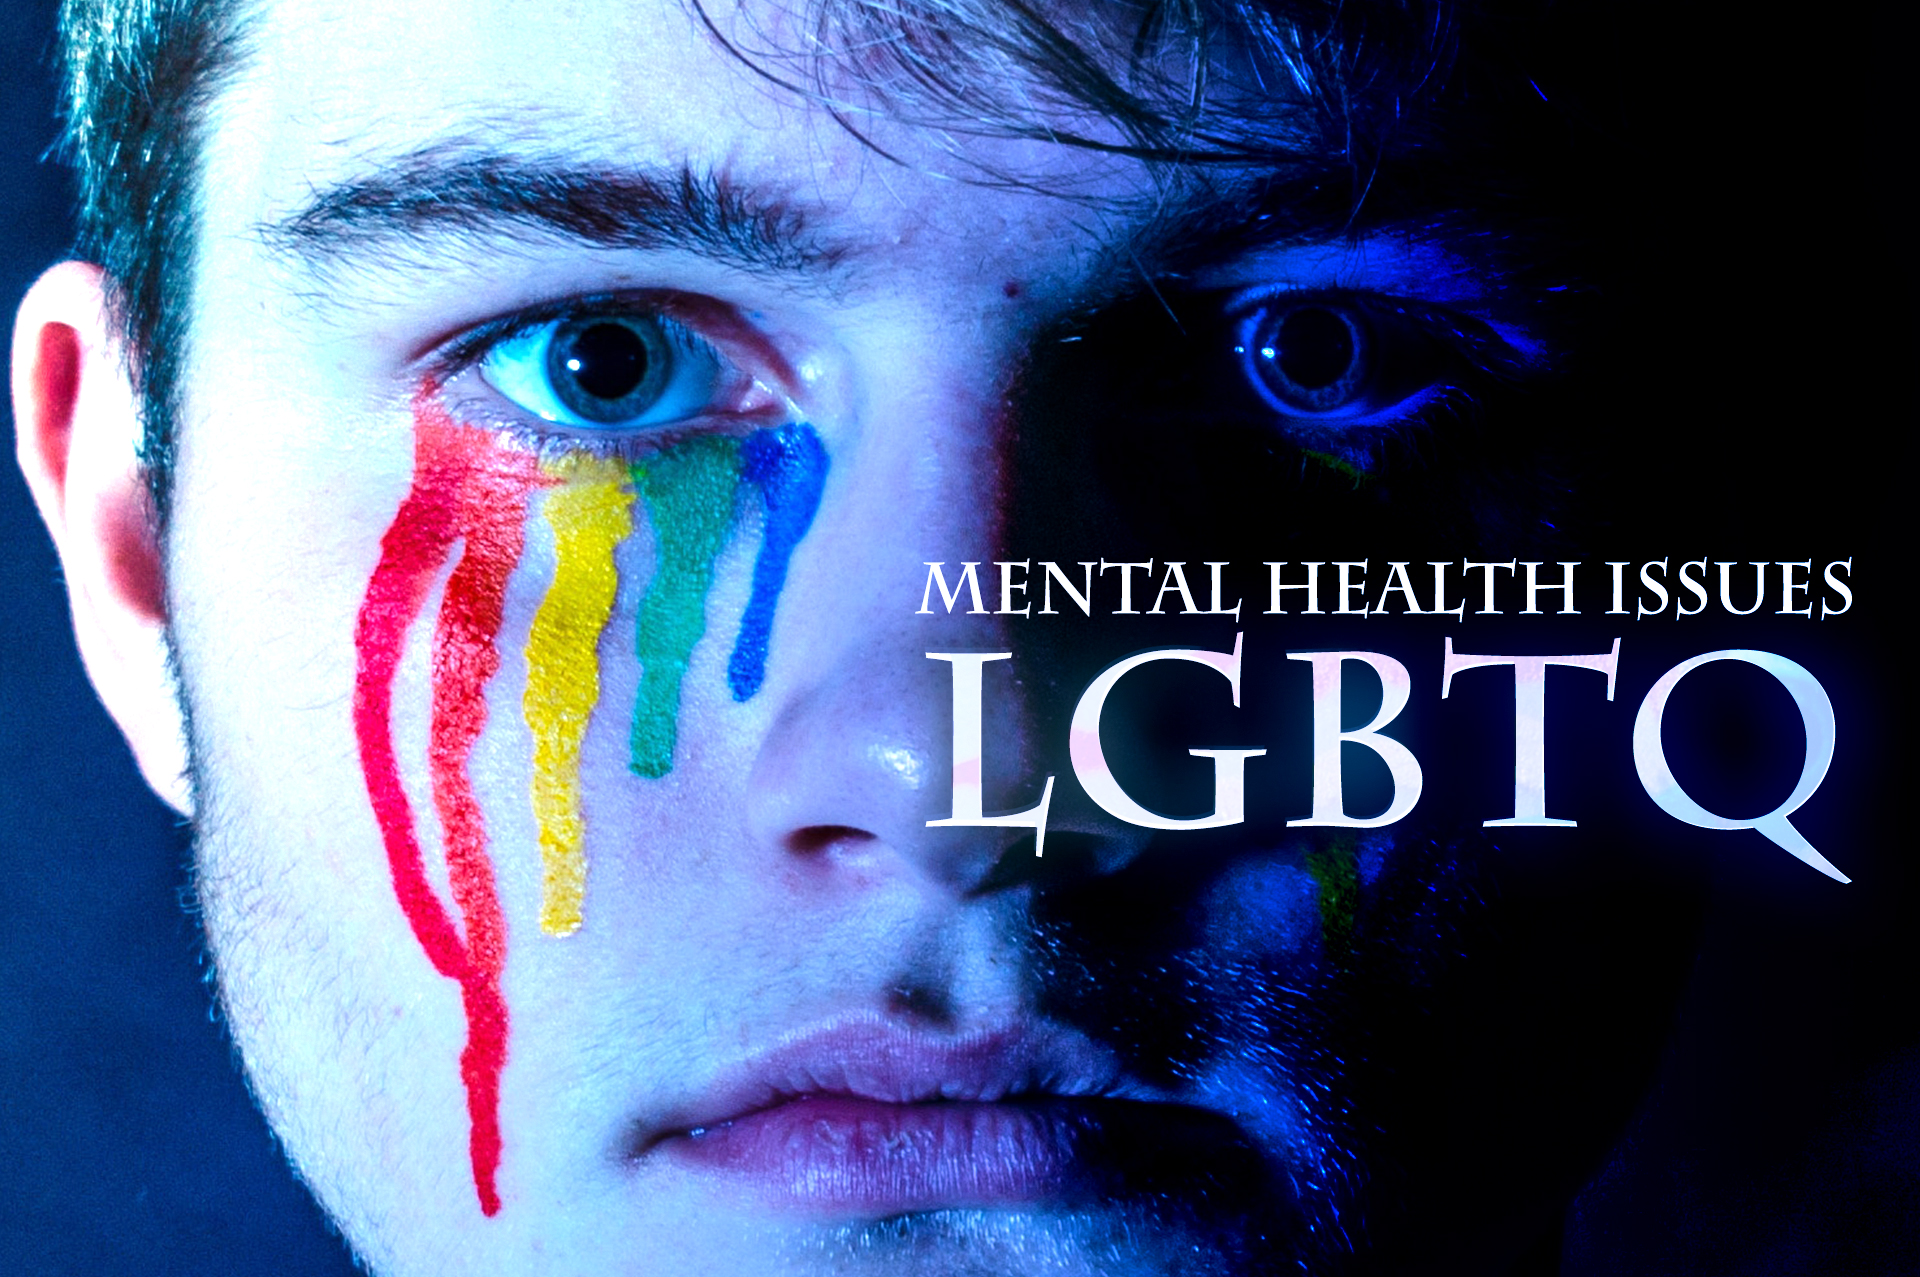 LGBTQ MENTAL HEALTH ADDITIONS Why Mental Health Issues In LGBTQ Communities Frequently Lead to Addiction